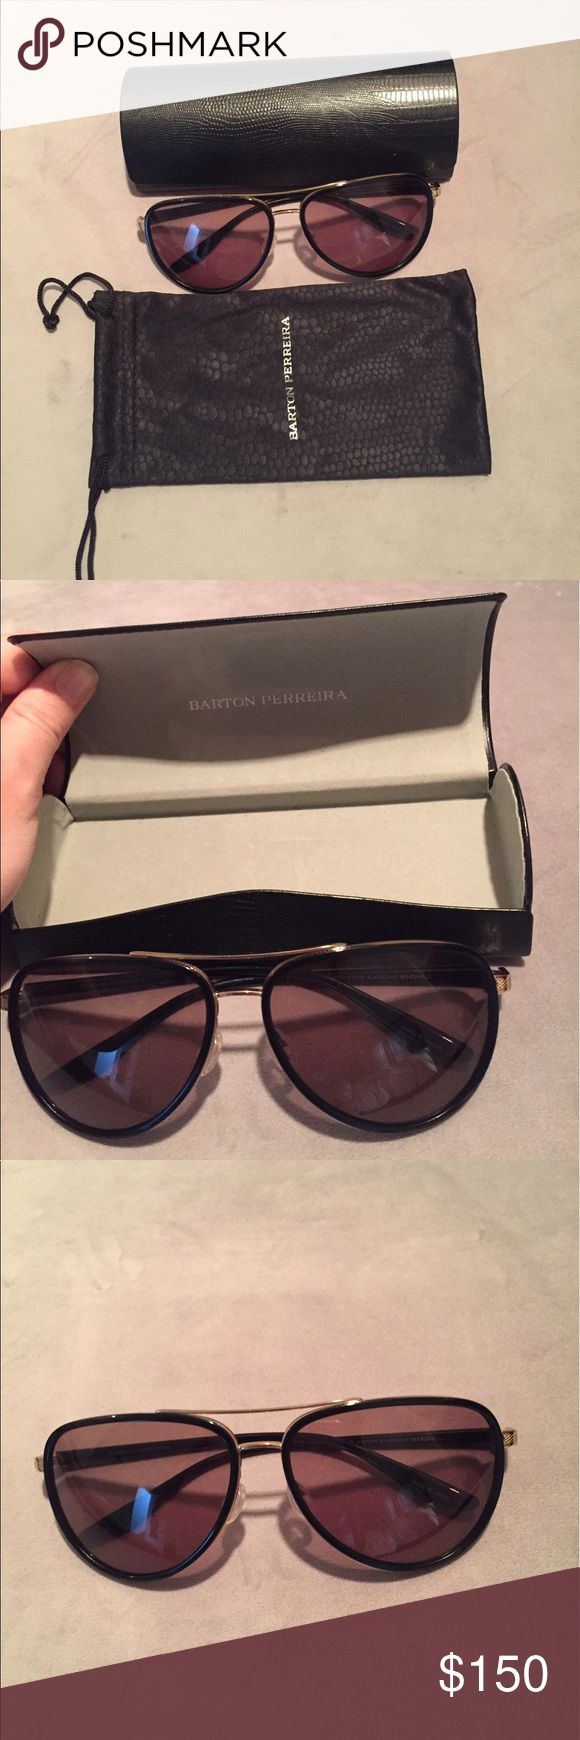 Barton Perreira Sunglasses Barton Perreira Sunglasses. Style Marshall. Never been worn. Come with Barton Perreira carrying case, Barton Perreira cleaning cloth and Barton Perreira carrying cloth case. NWOT. Barton Perreira Accessories Sunglasses